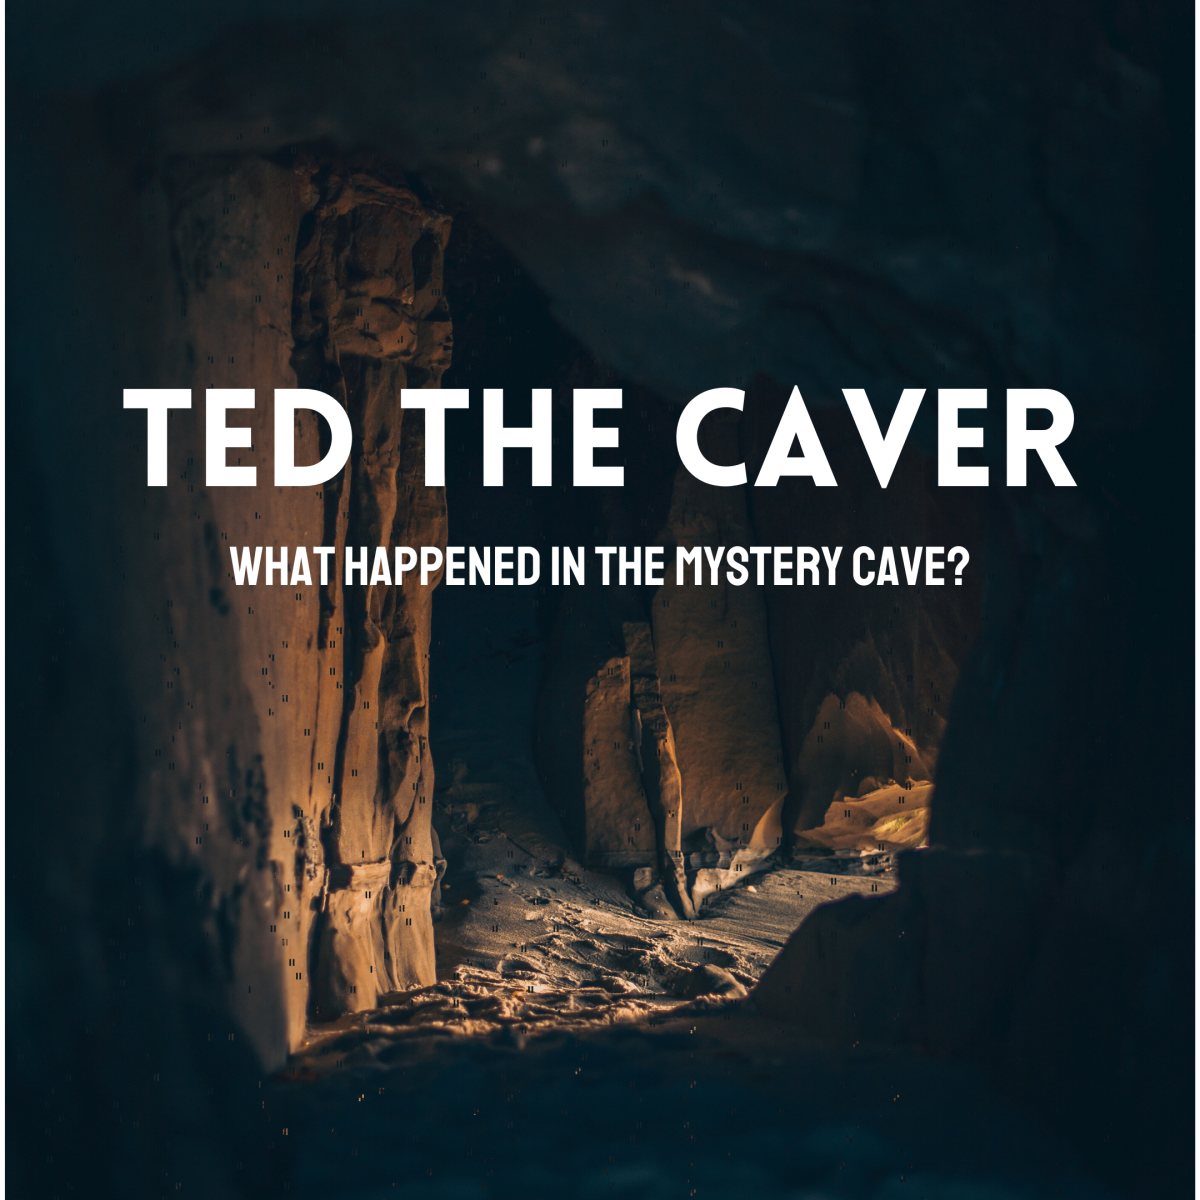 Whatever Happened to Ted the Caver?